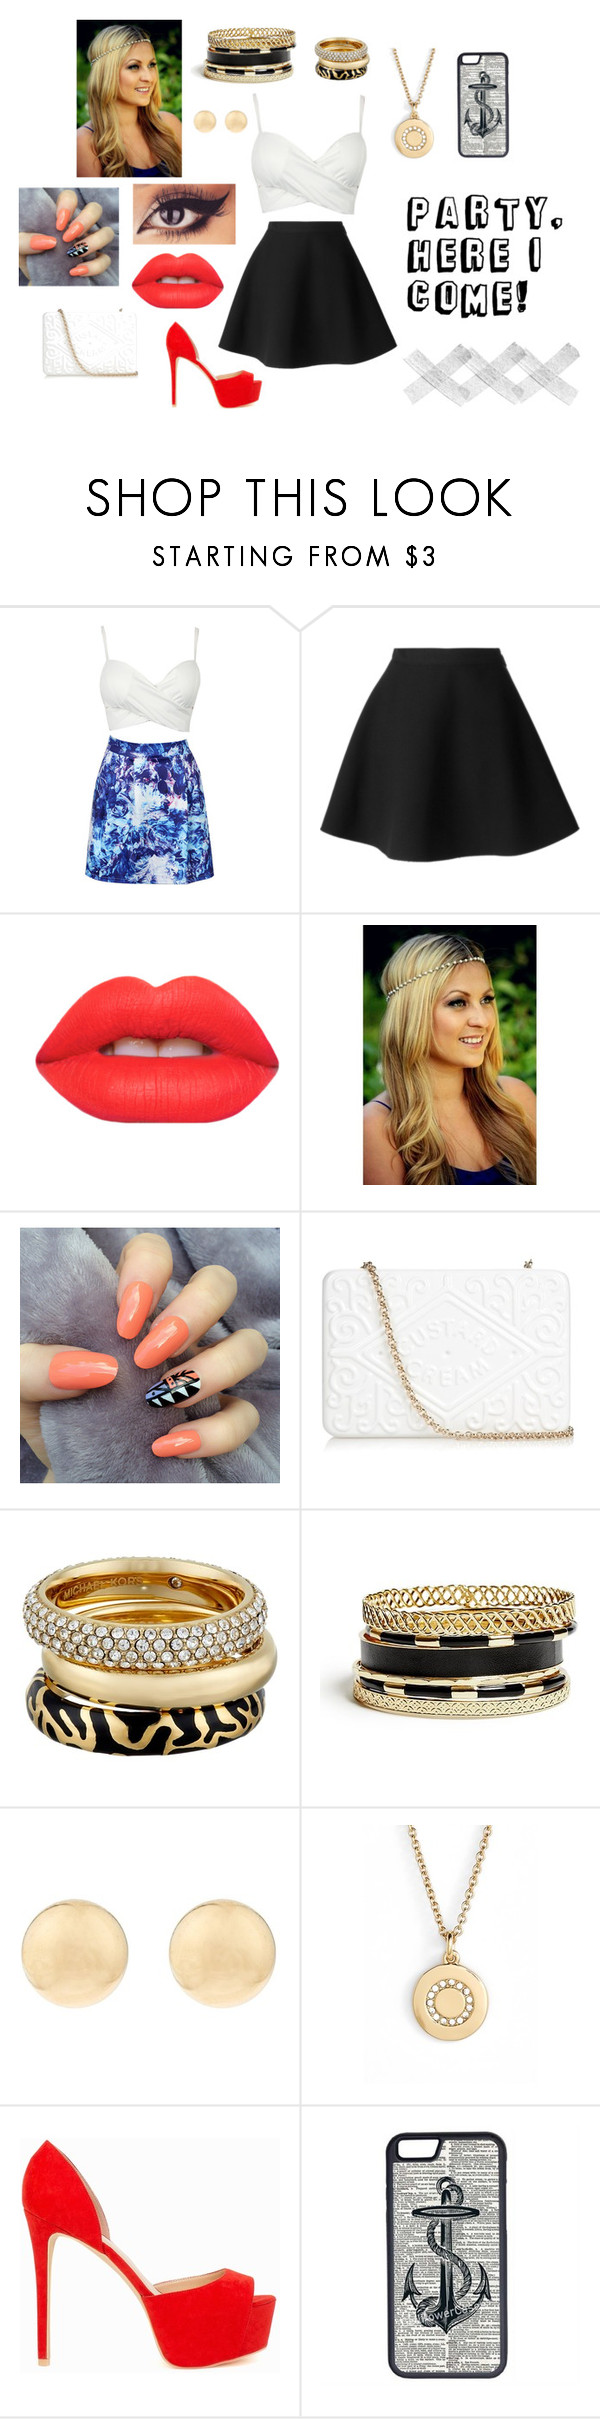 """""""#19"""" by onelovelily ❤ liked on Polyvore featuring MSGM, Lime Crime, Anya Hindmarch, Michael Kors, GUESS, Kate Spade, Nly Shoes, CellPowerCases and partytime"""